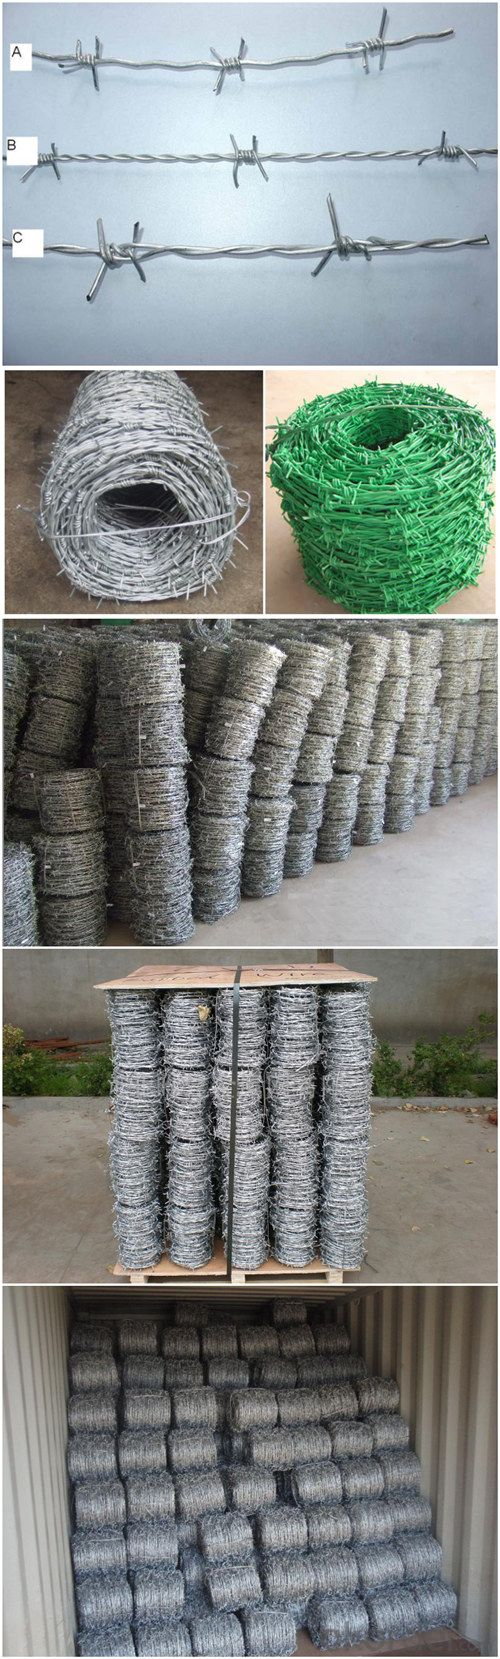 China Manufacturer of Galvanized Barbed Wire